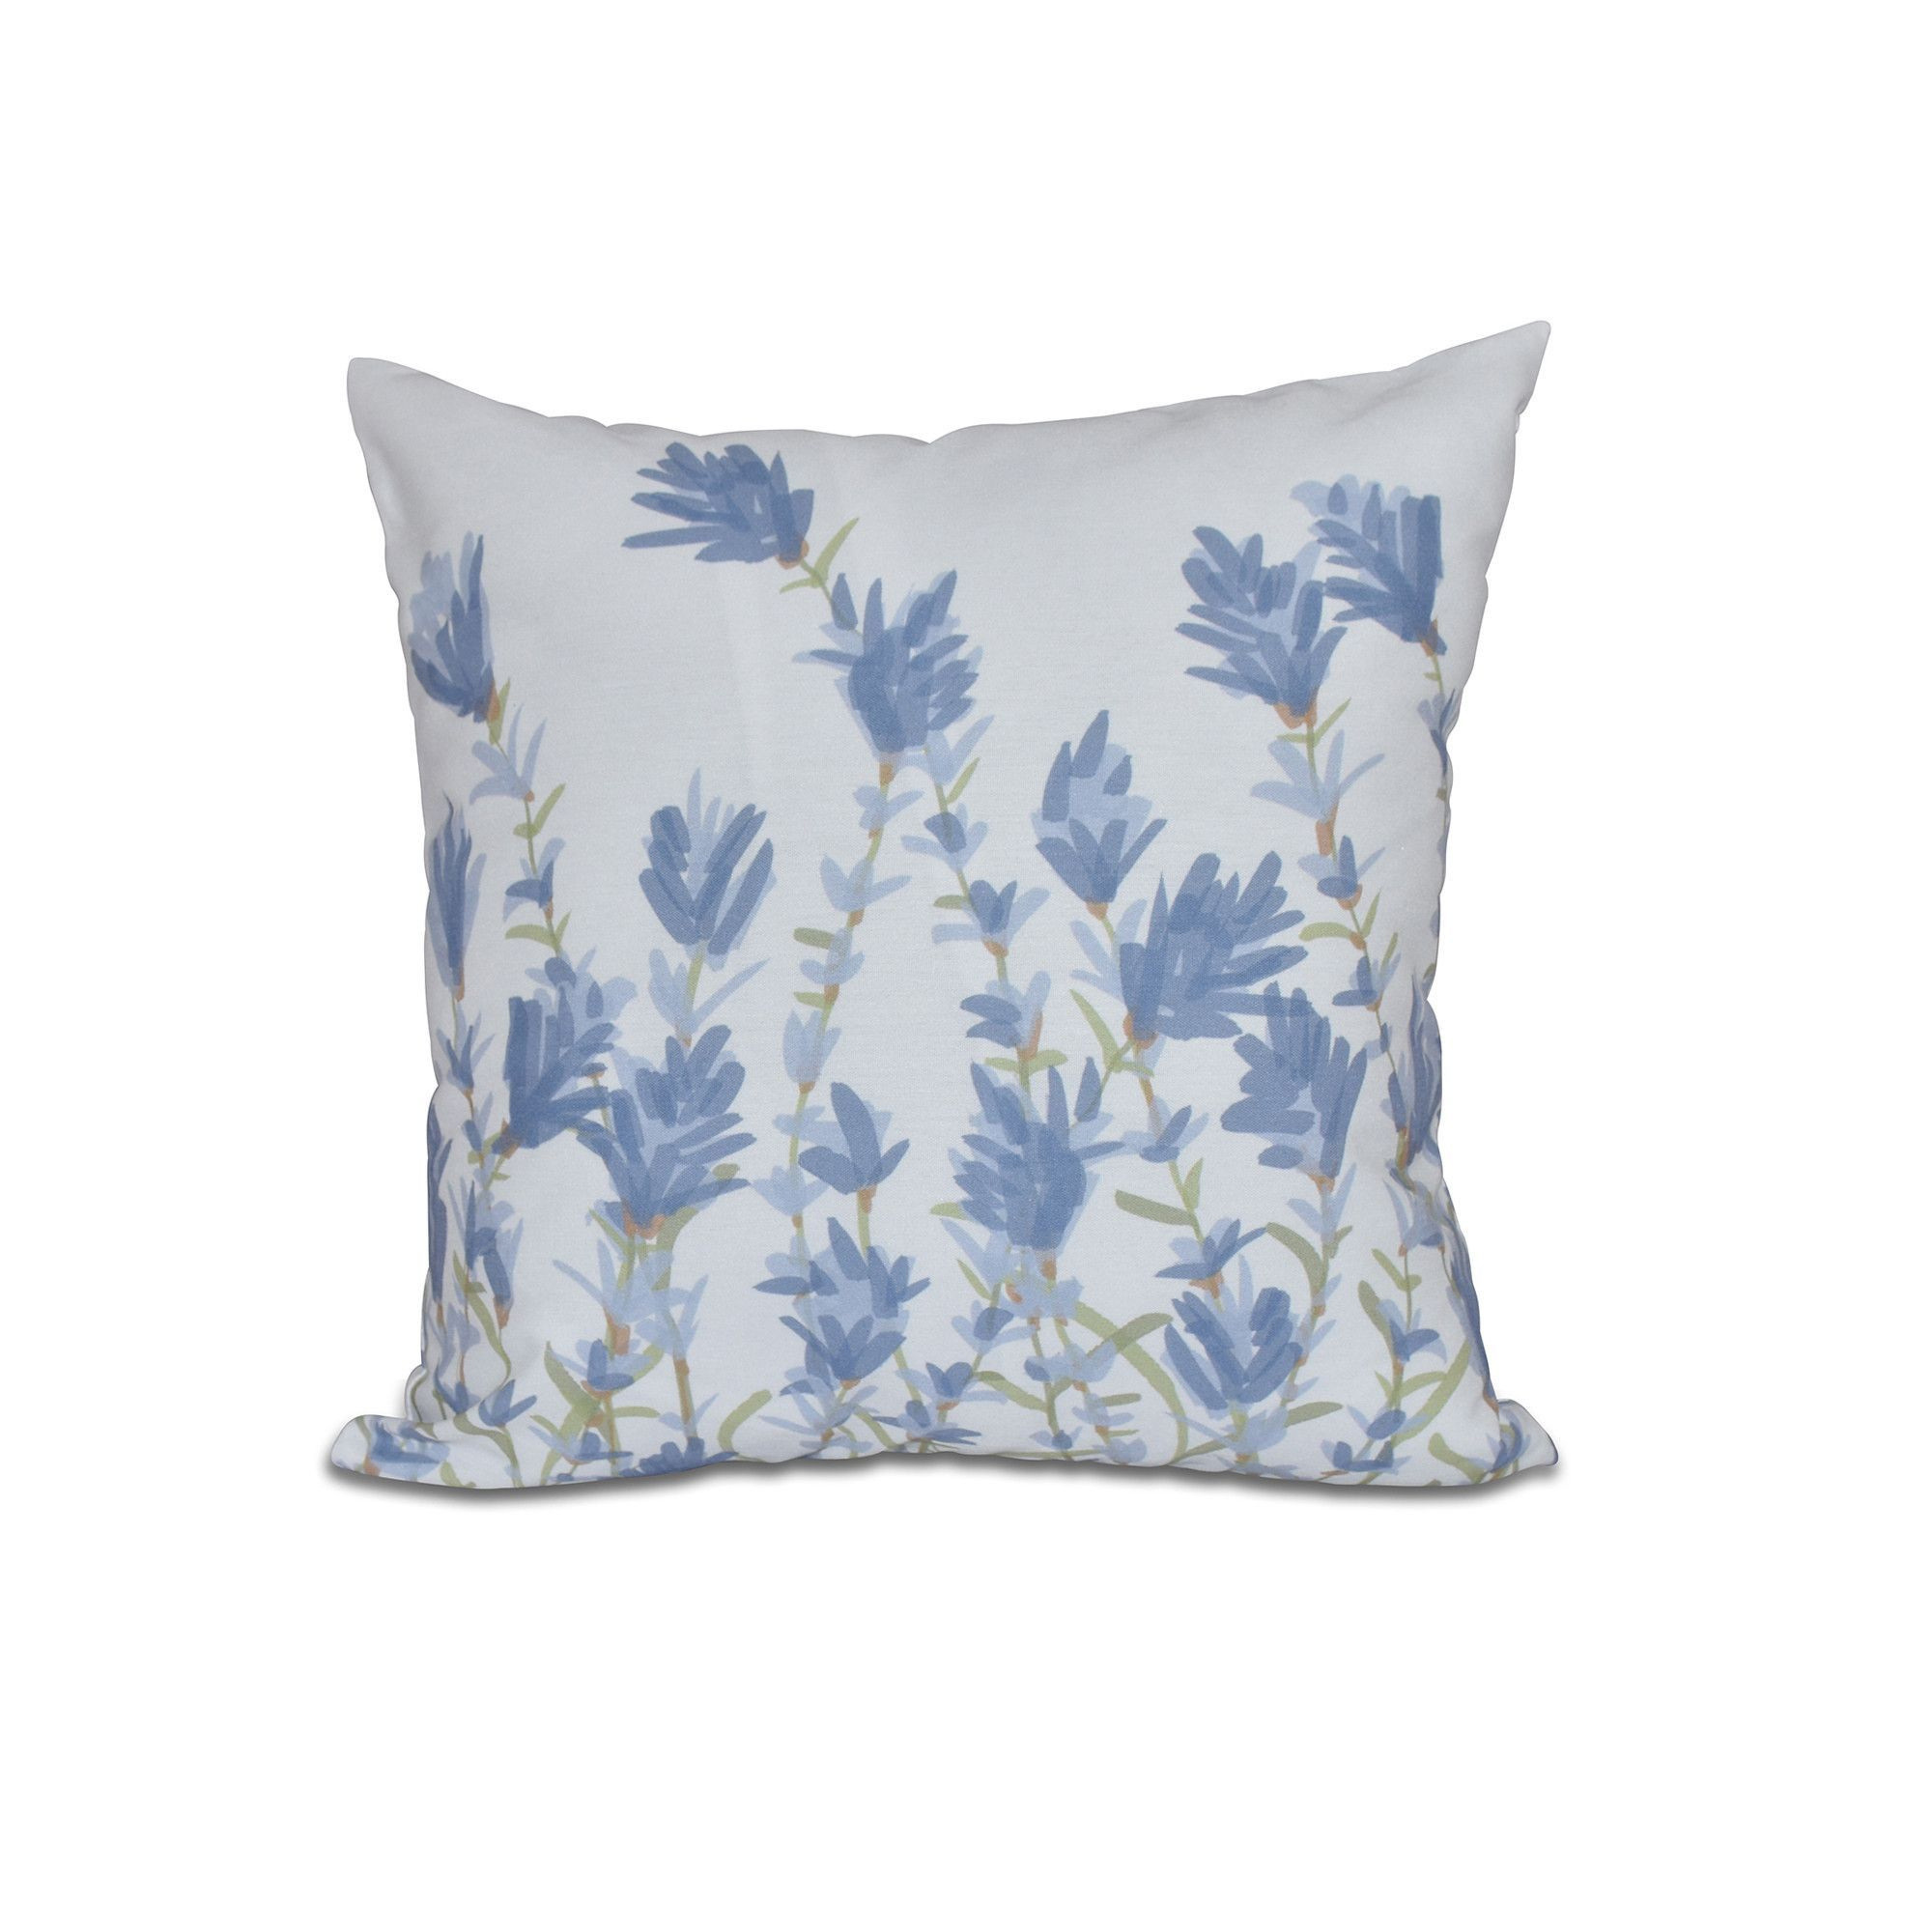 Orchard Lane Lavender Floral Throw Pillow